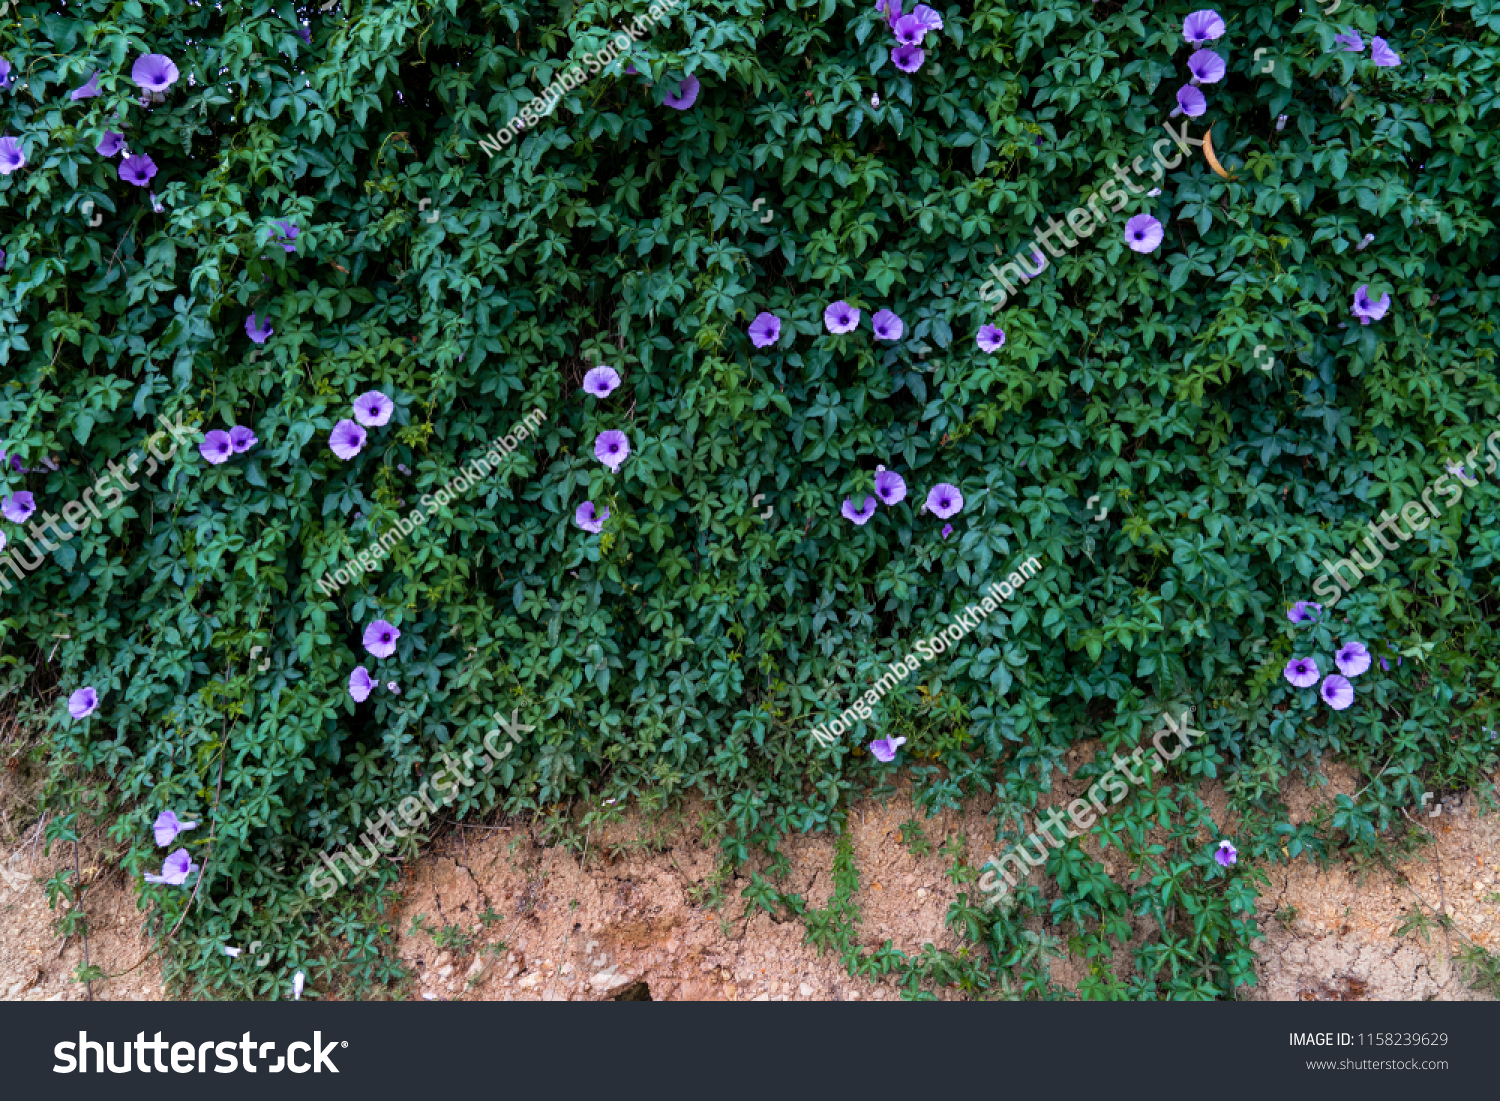 Creeper Purple Flowers Covering Wall Stock Photo Edit Now 1158239629